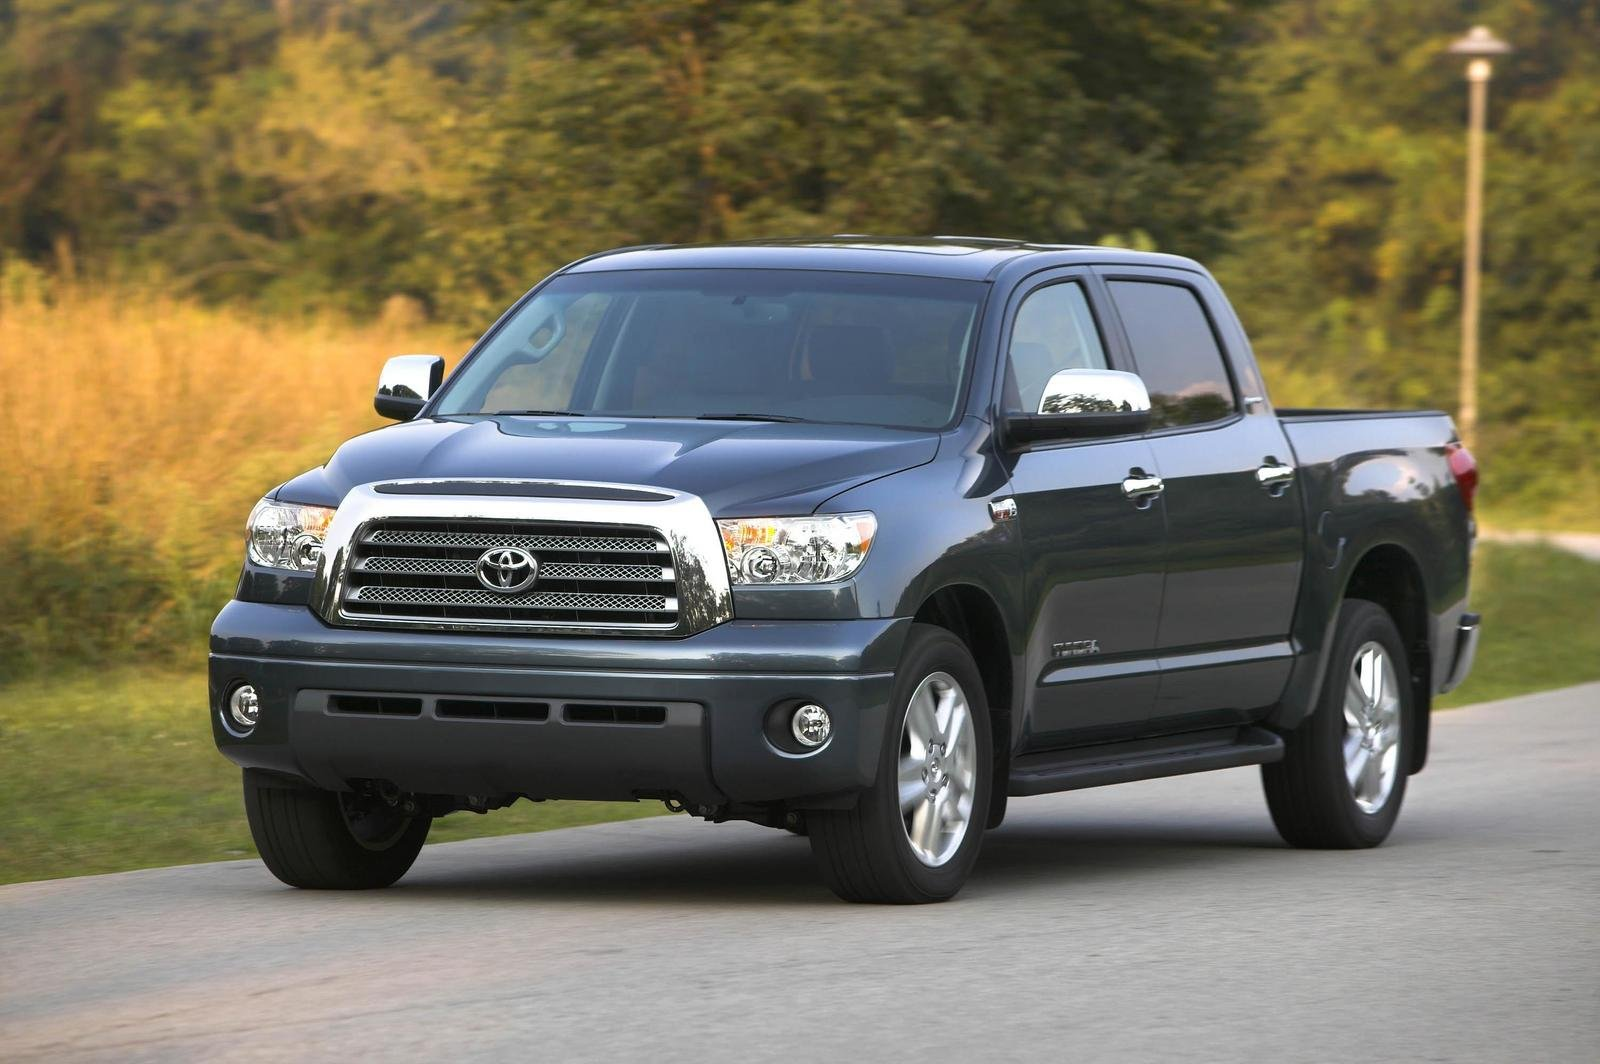 2008 toyota tundra pricing announced picture 203141 car news top speed. Black Bedroom Furniture Sets. Home Design Ideas